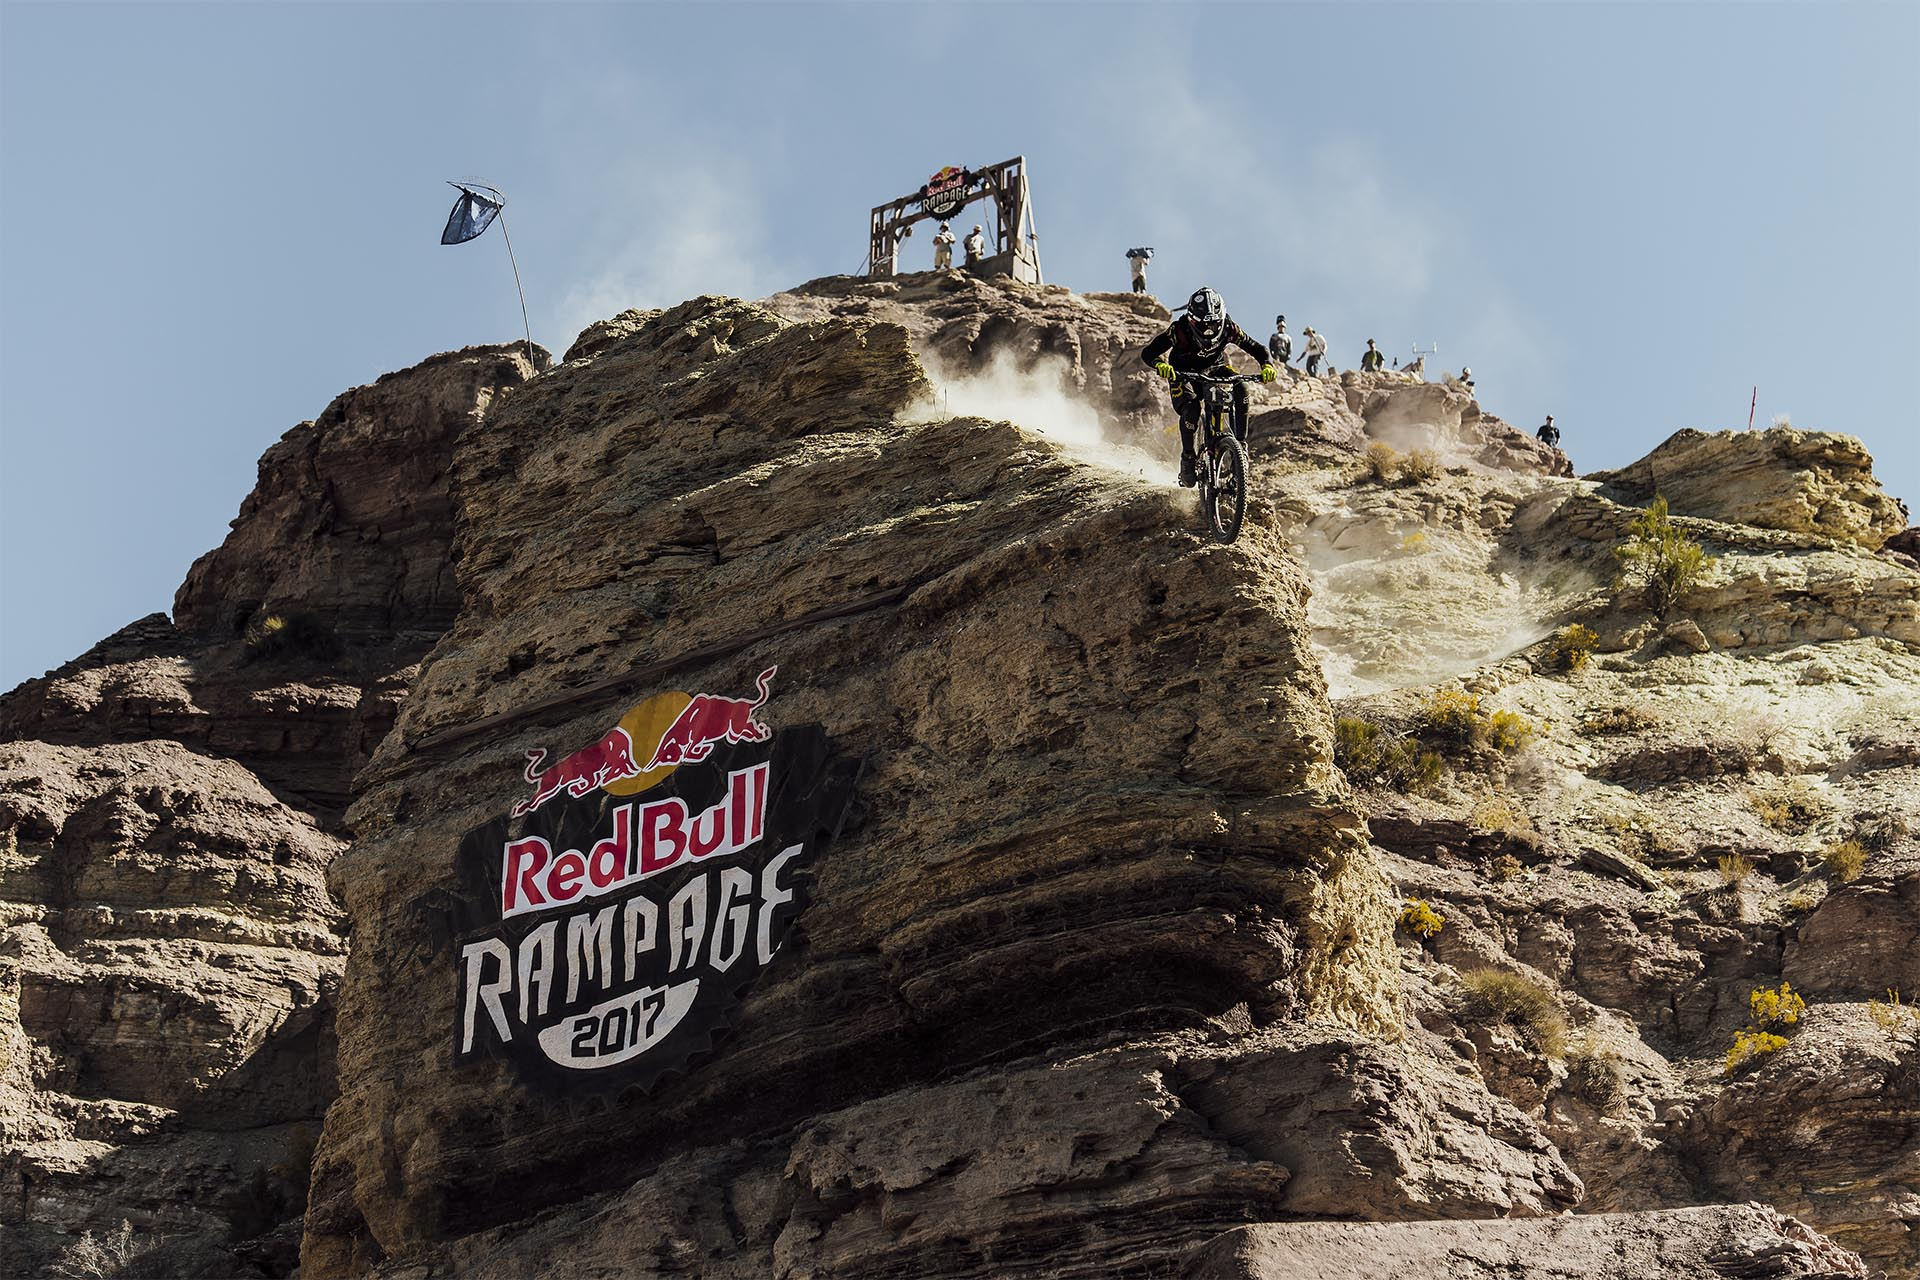 Red Bull Rampage >> Boombox Group